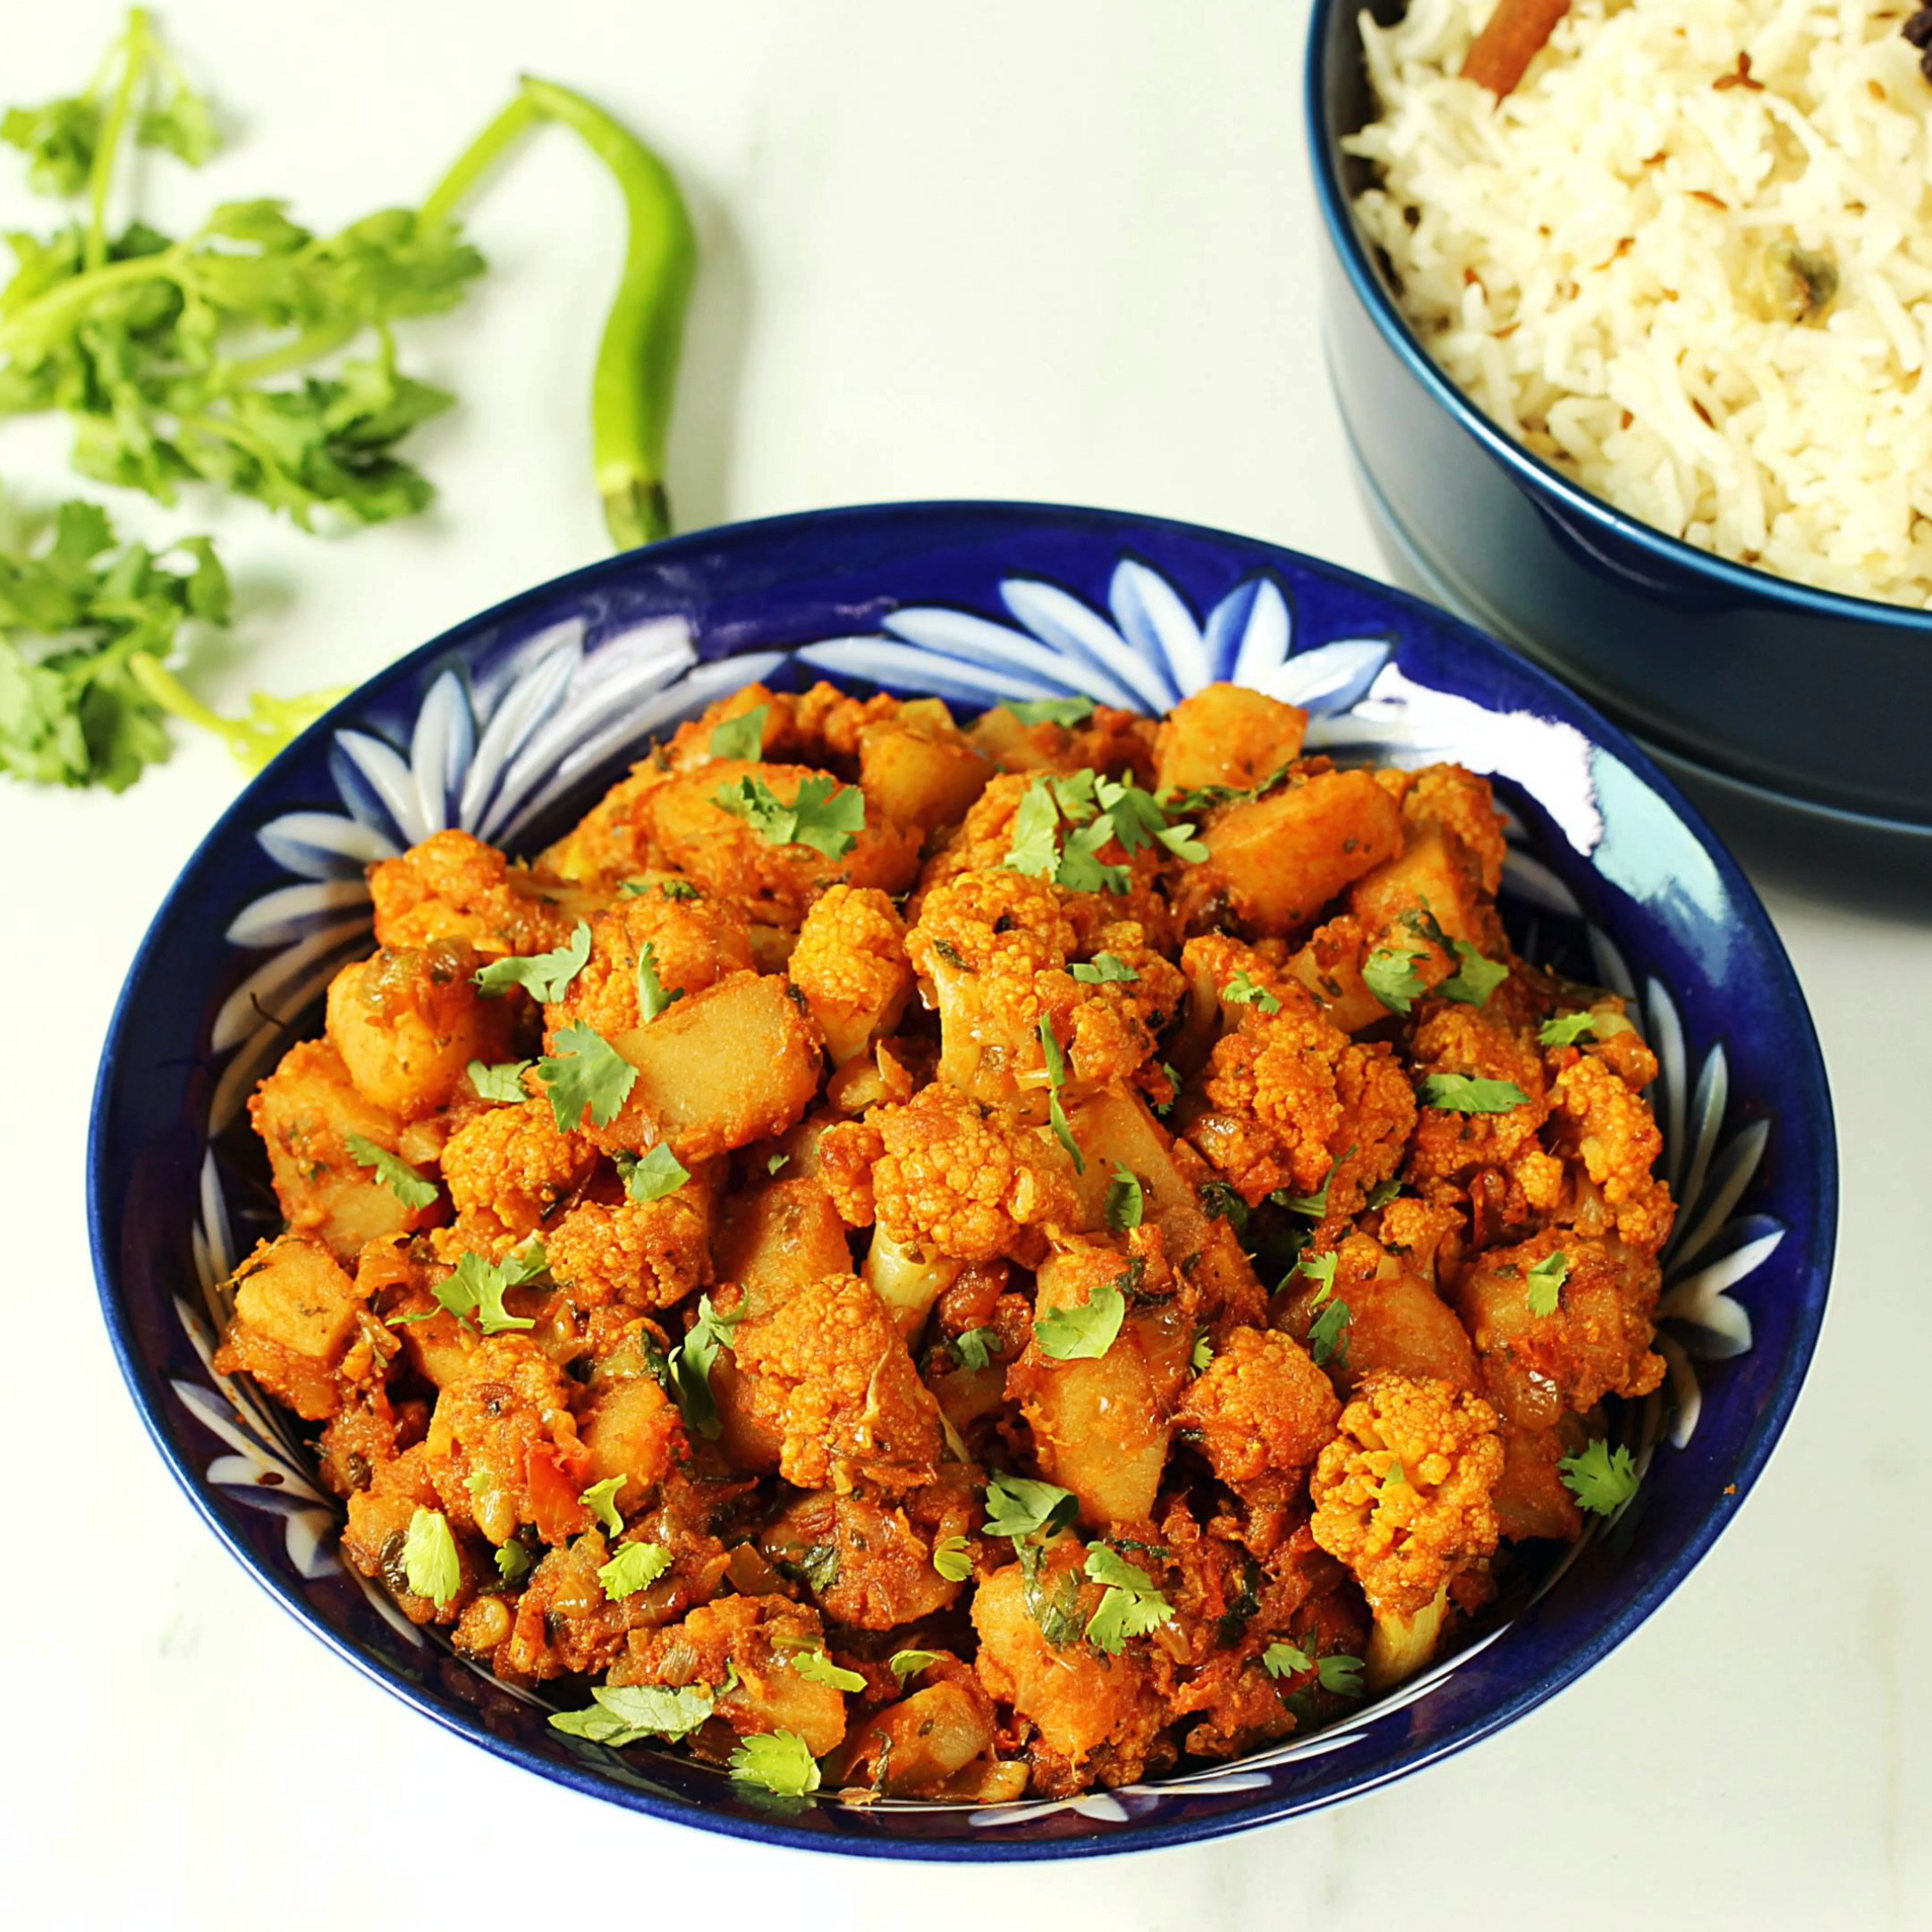 Aloo gobi (Potato cauliflower stir fry)